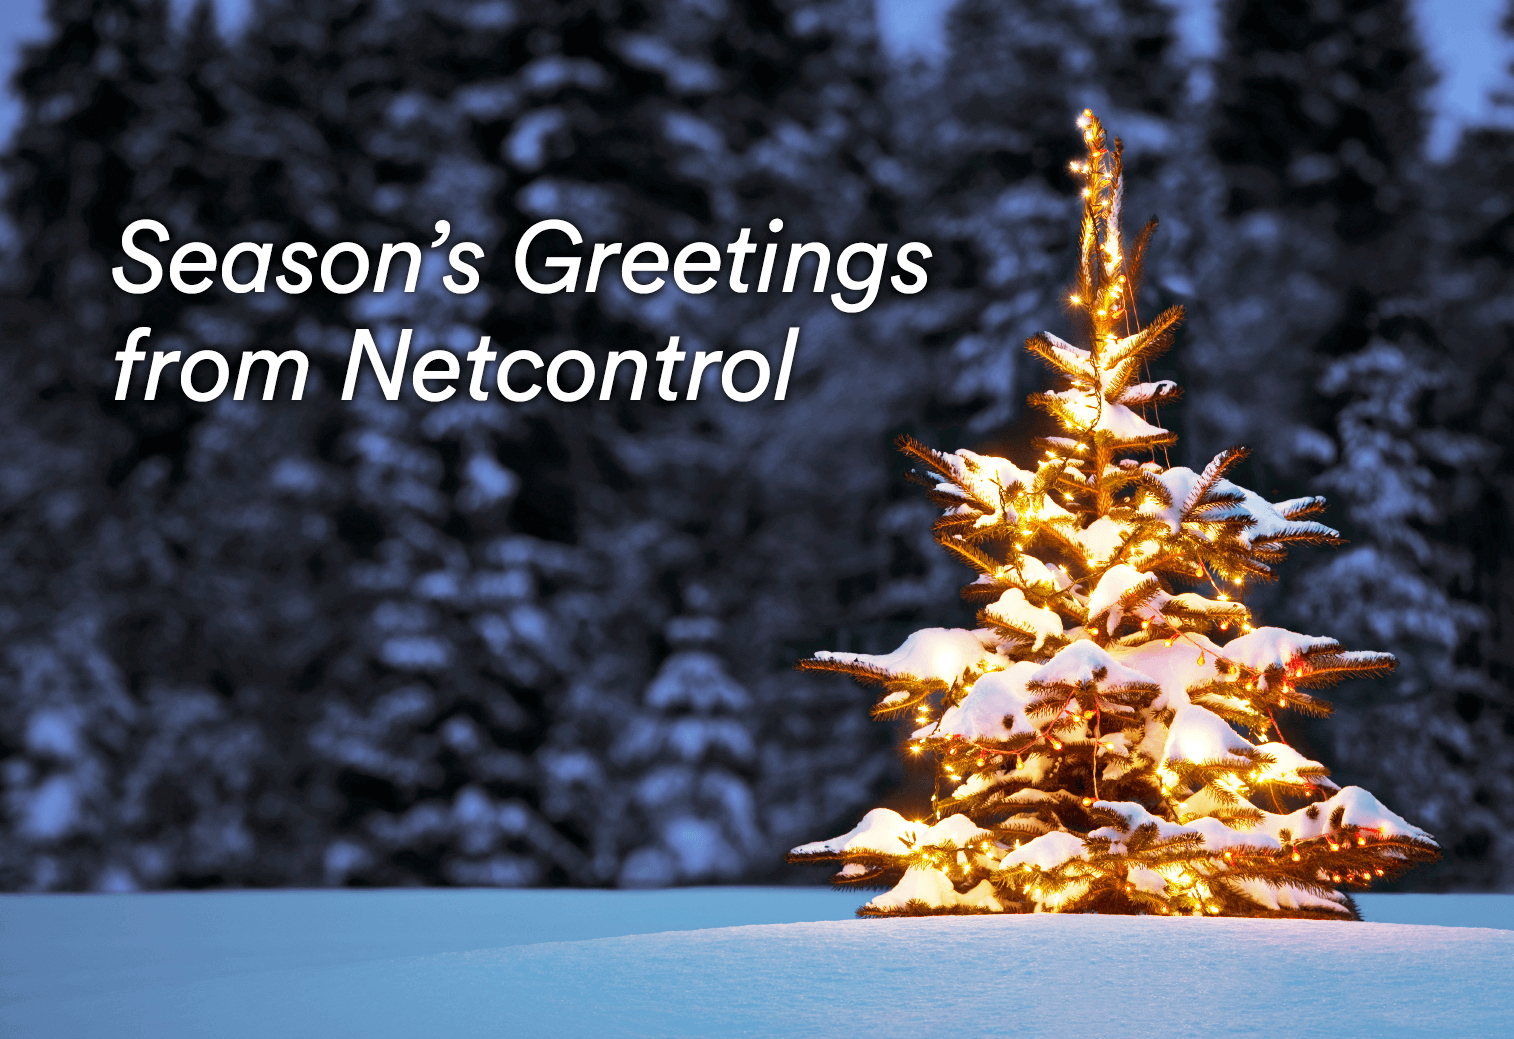 Seasons-Greetings-from-Netcontrol